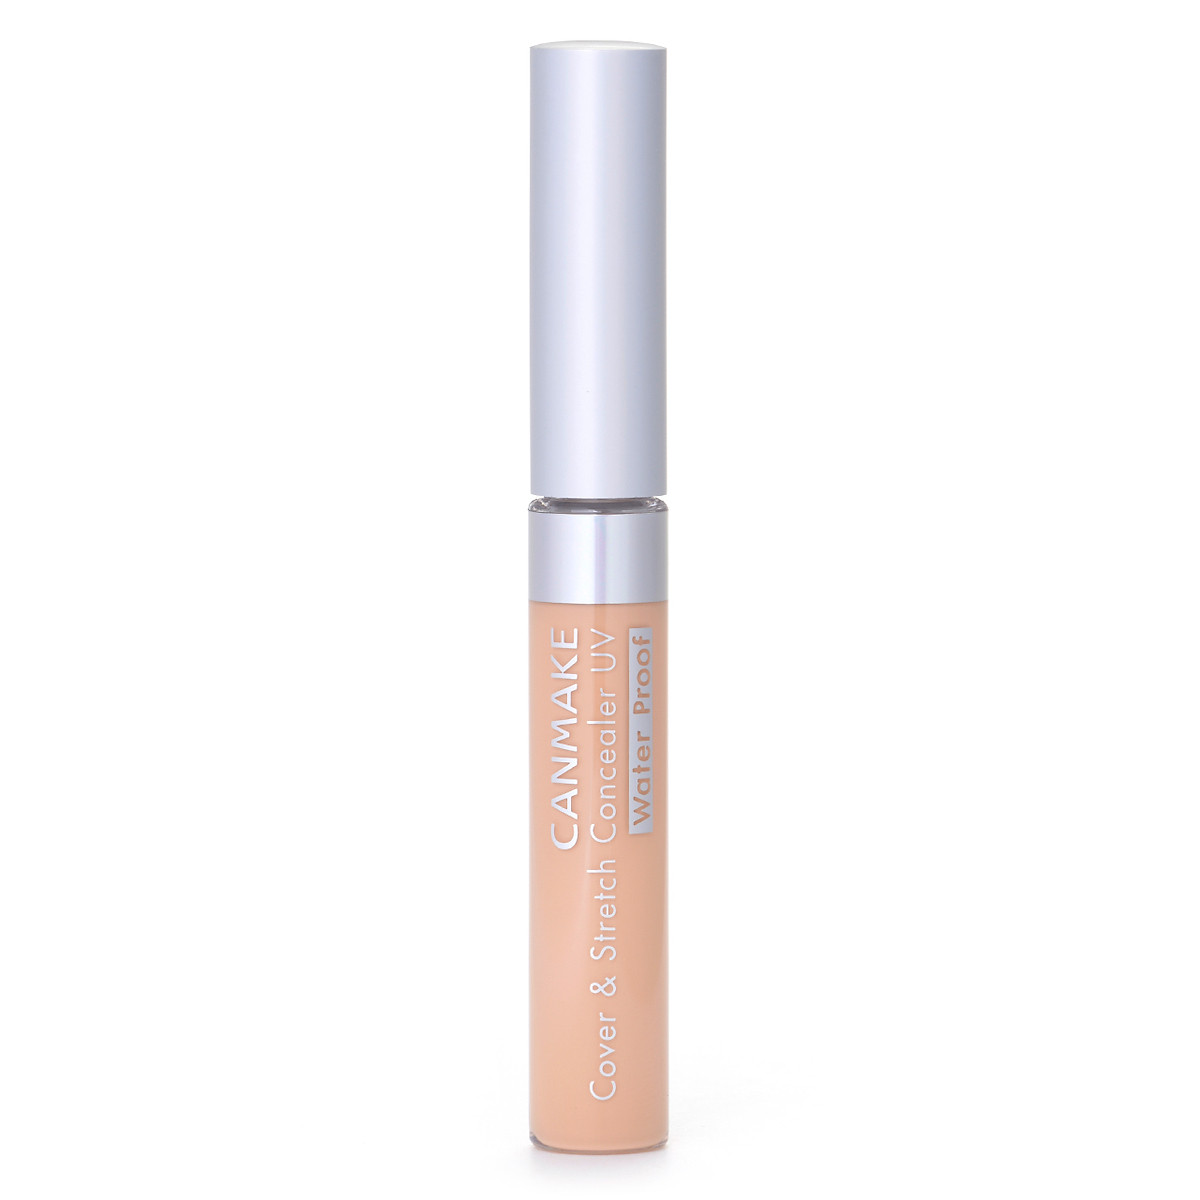 Che khuyết điểm môi Canmake Canmake Cover & Stretch Concealer UV SPF25 PA++